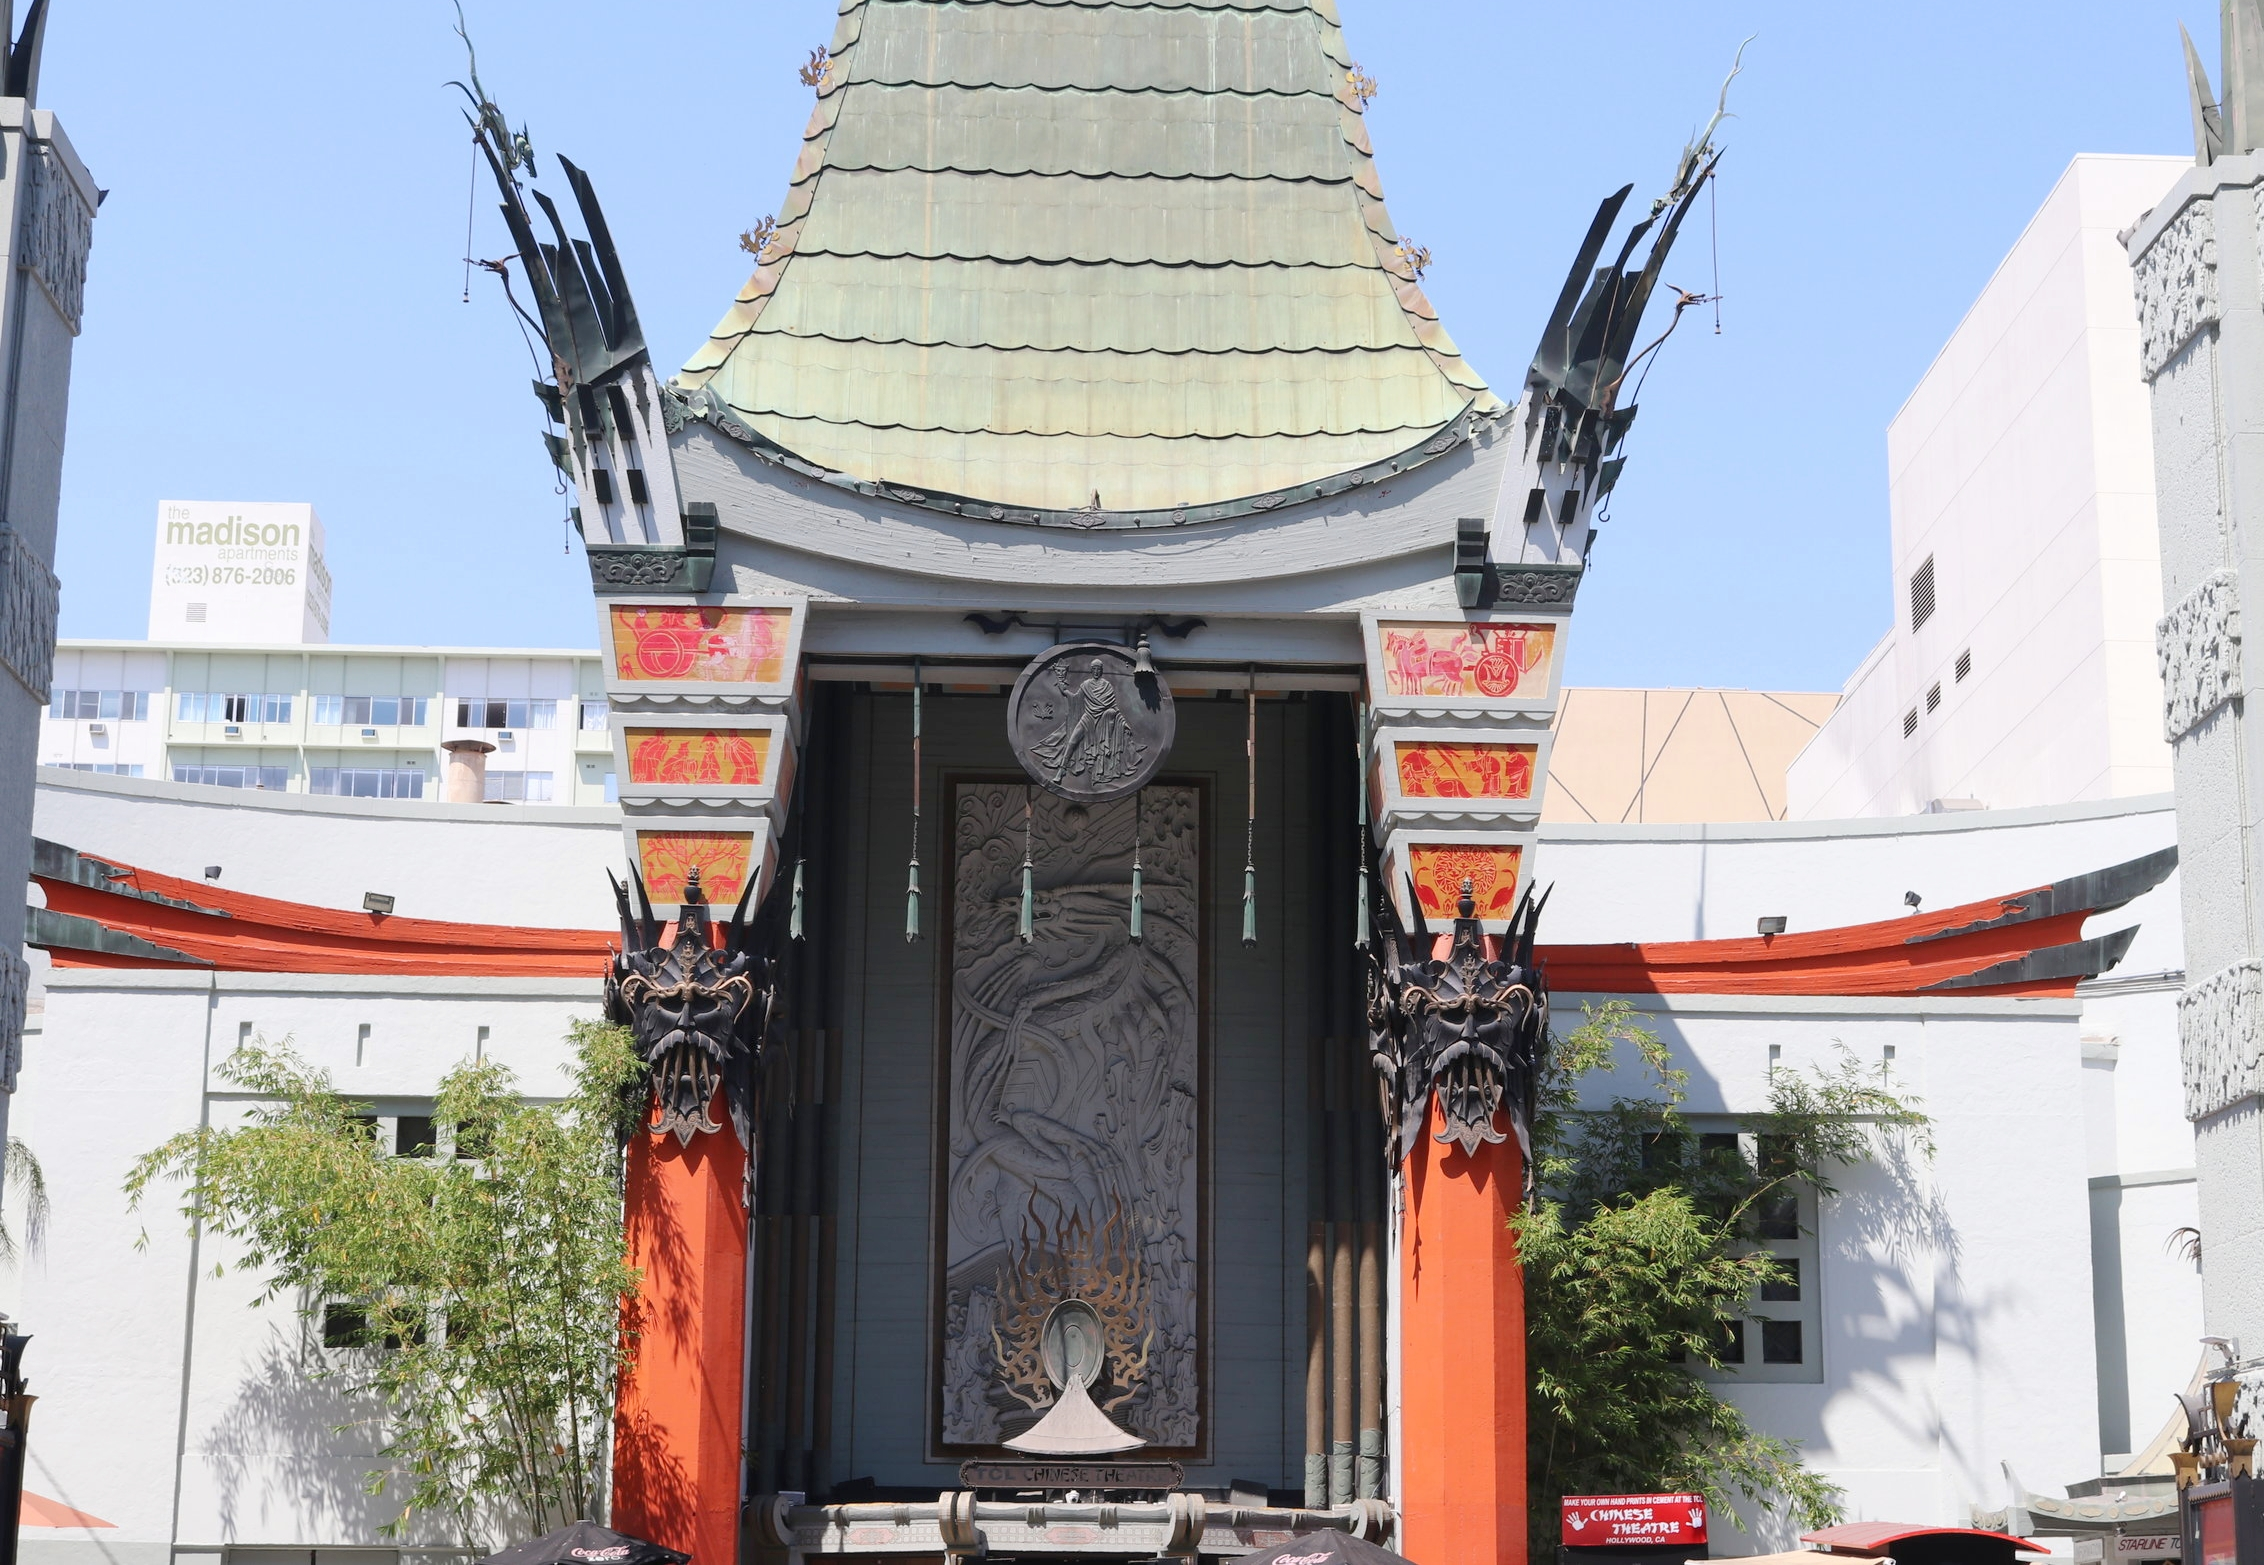 The infamous Chinese Theatre on Hollywood Blvd.